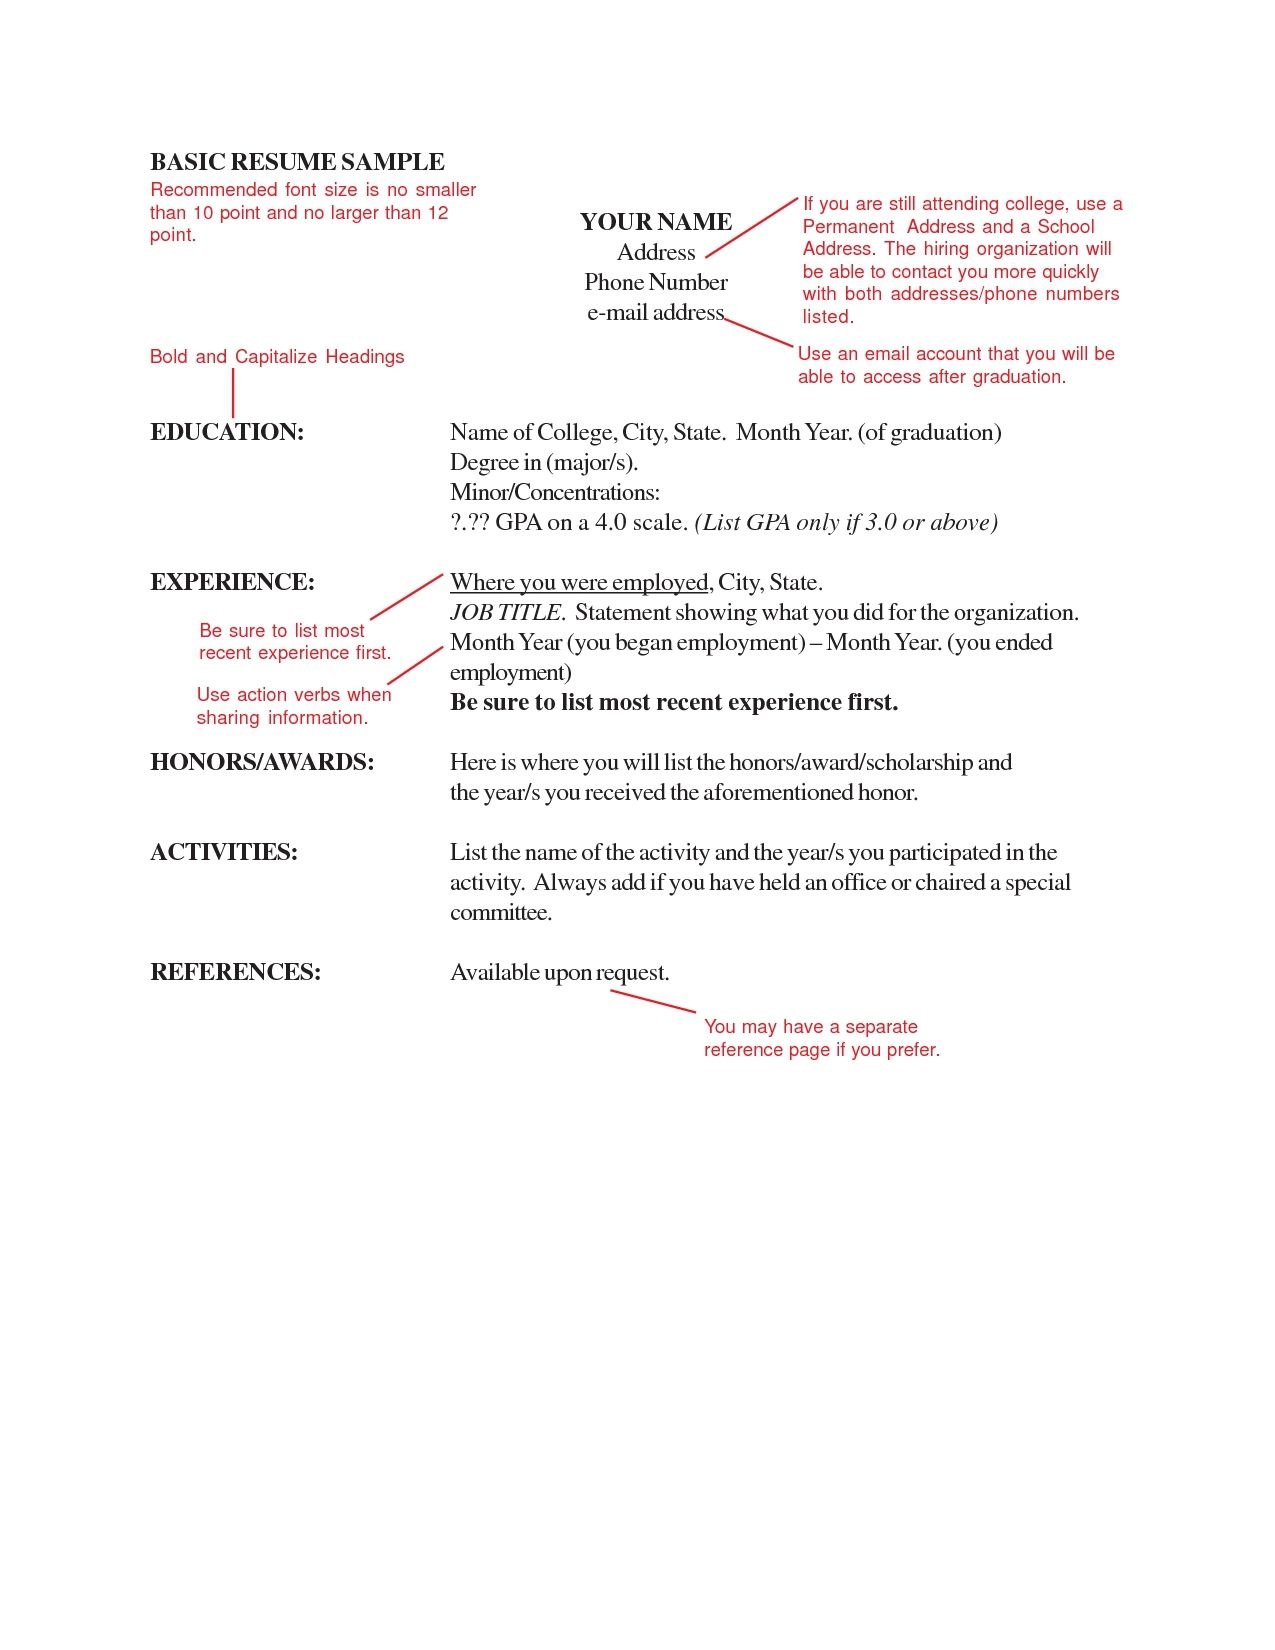 What Font Size Should A Resume Be.Letter Size 3 Resume Format Resume Fonts Resume Design